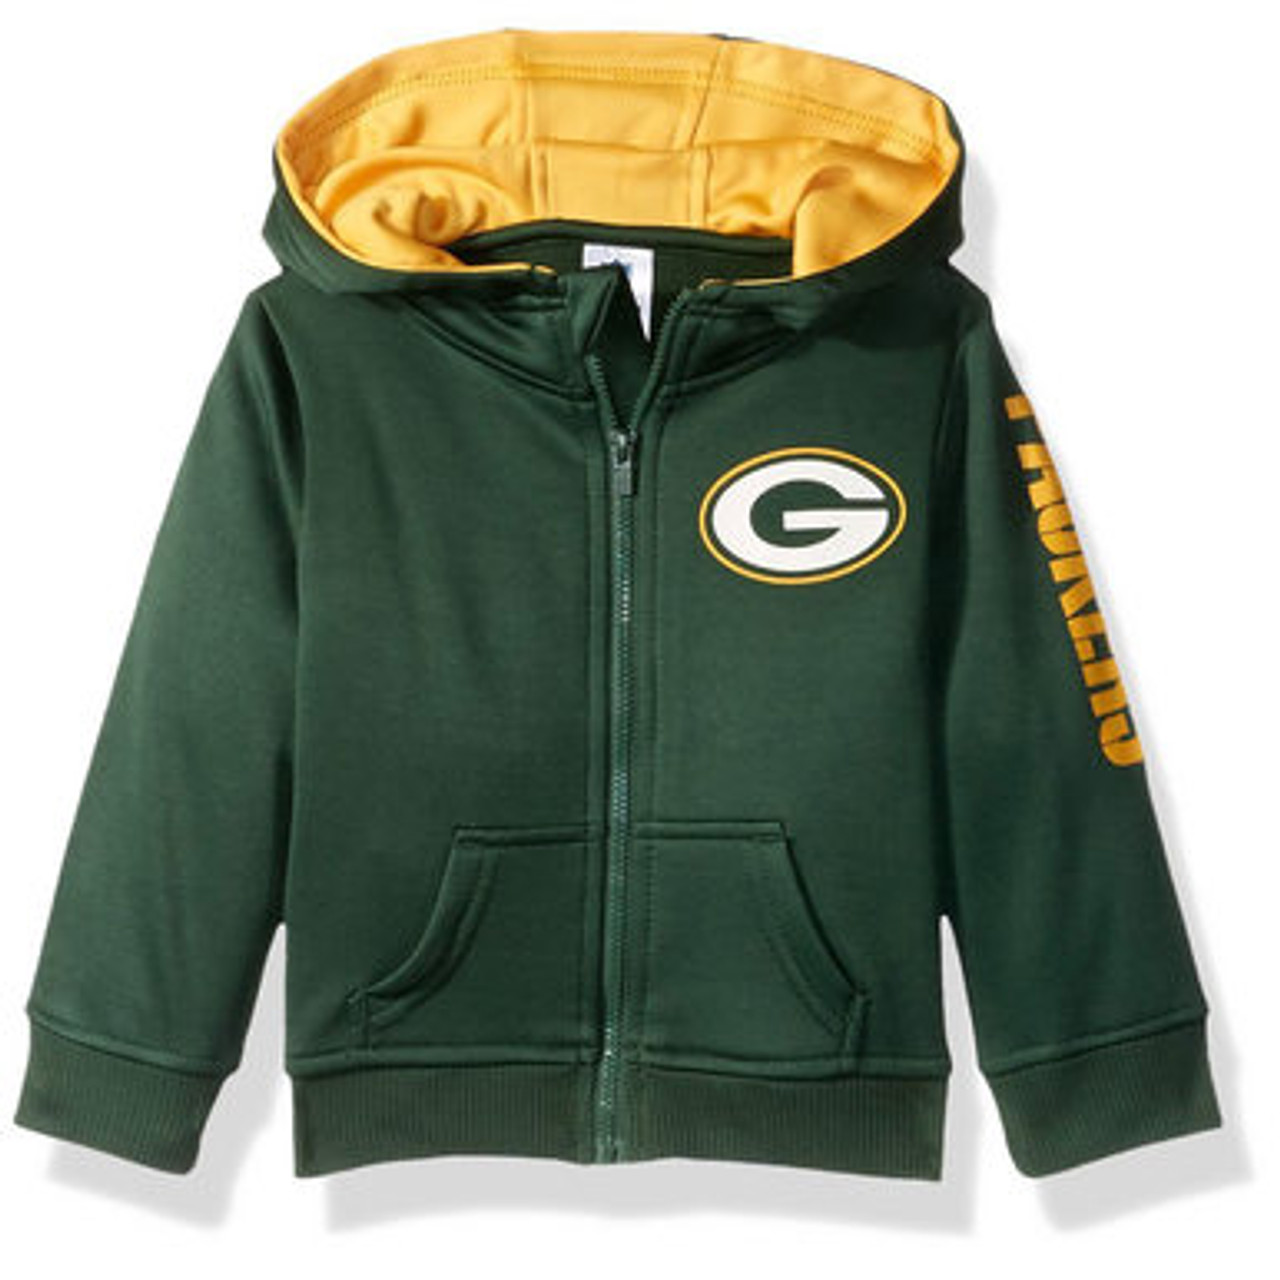 9e8884363 Green Bay Packers Full Zip Hoodie - Infant and Toddler ...